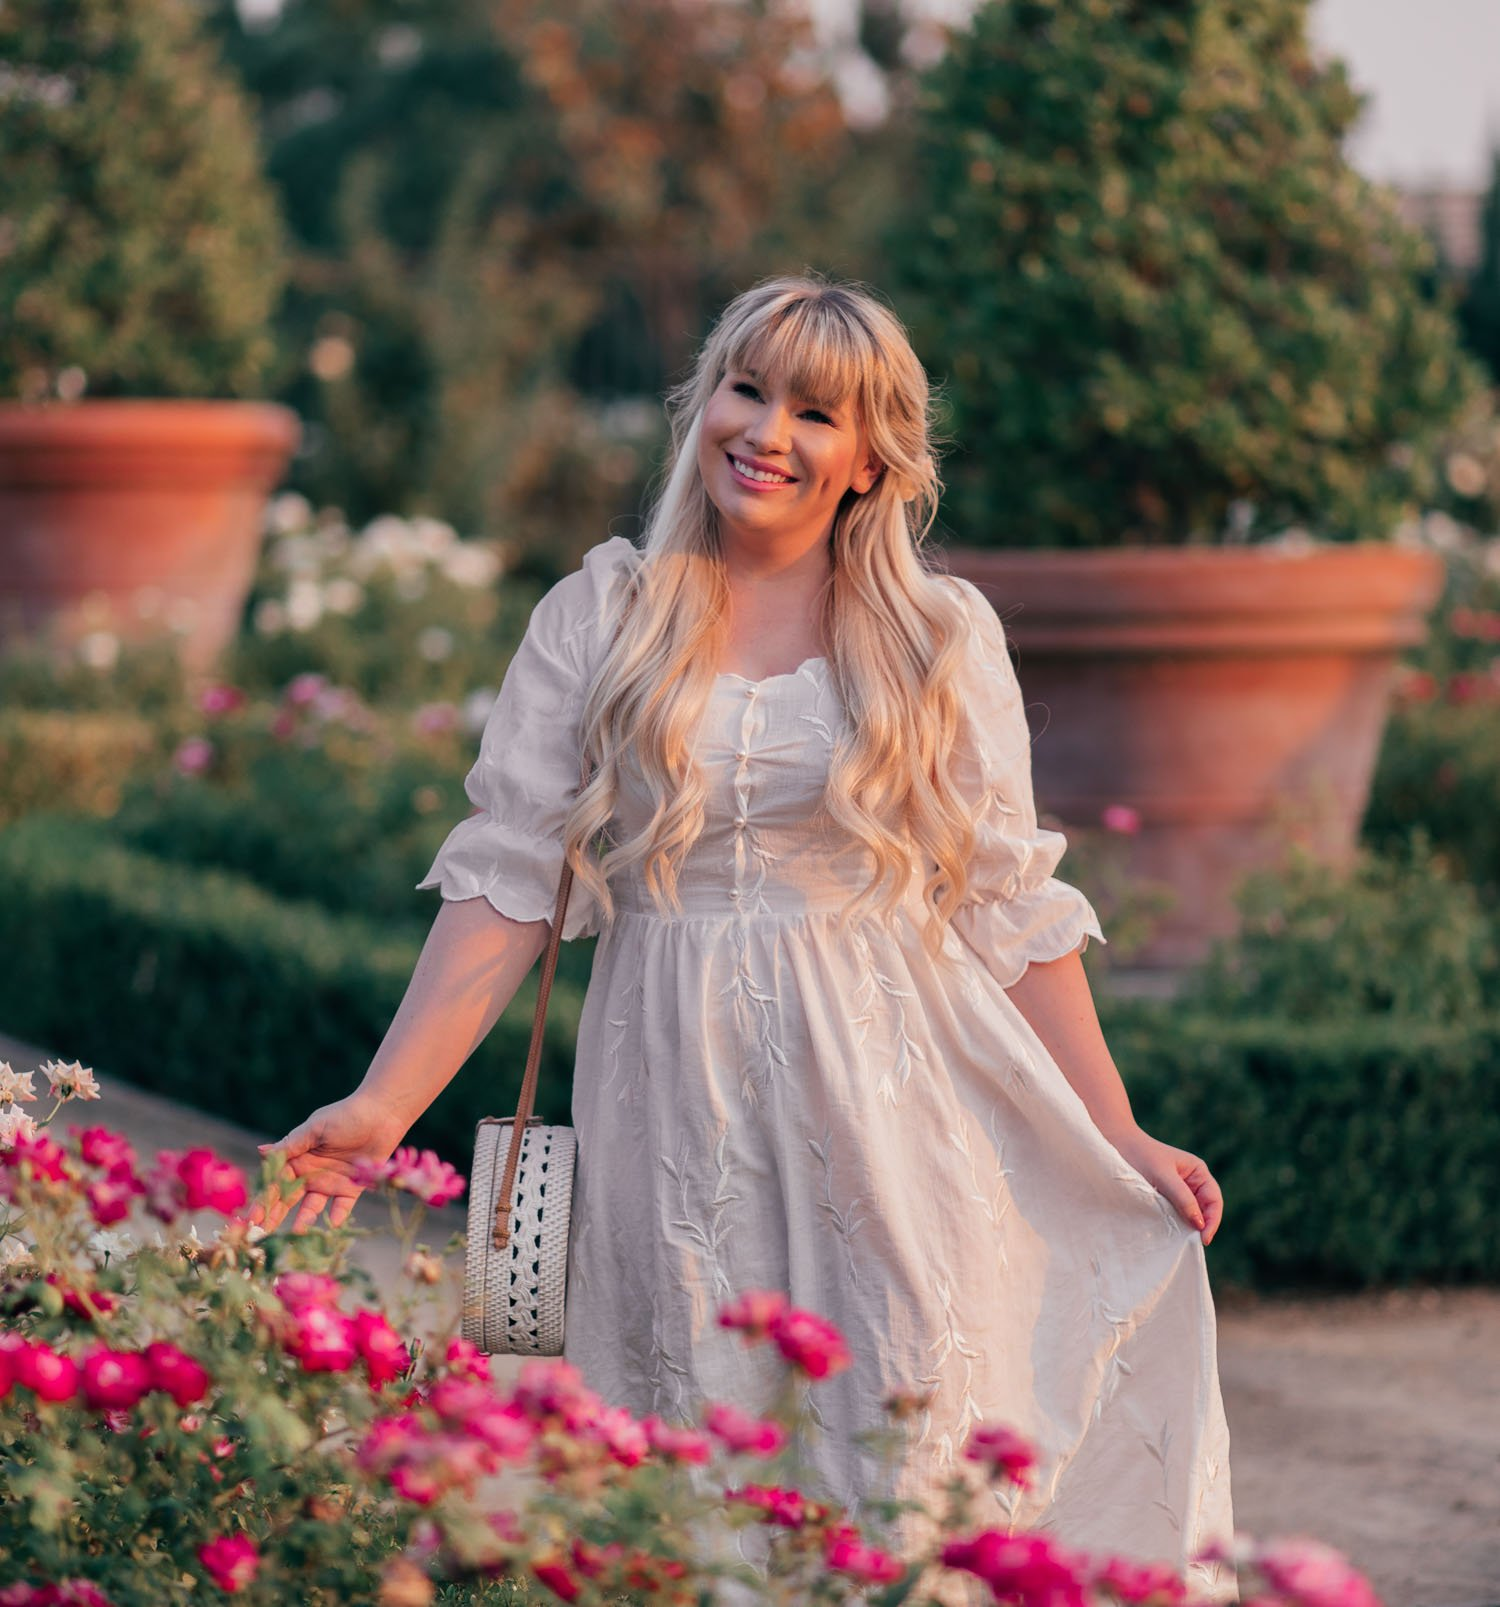 Fashion Blogger Elizabeth Hugen from Lizzie in Lace shares a feminine white dress for summer and fall